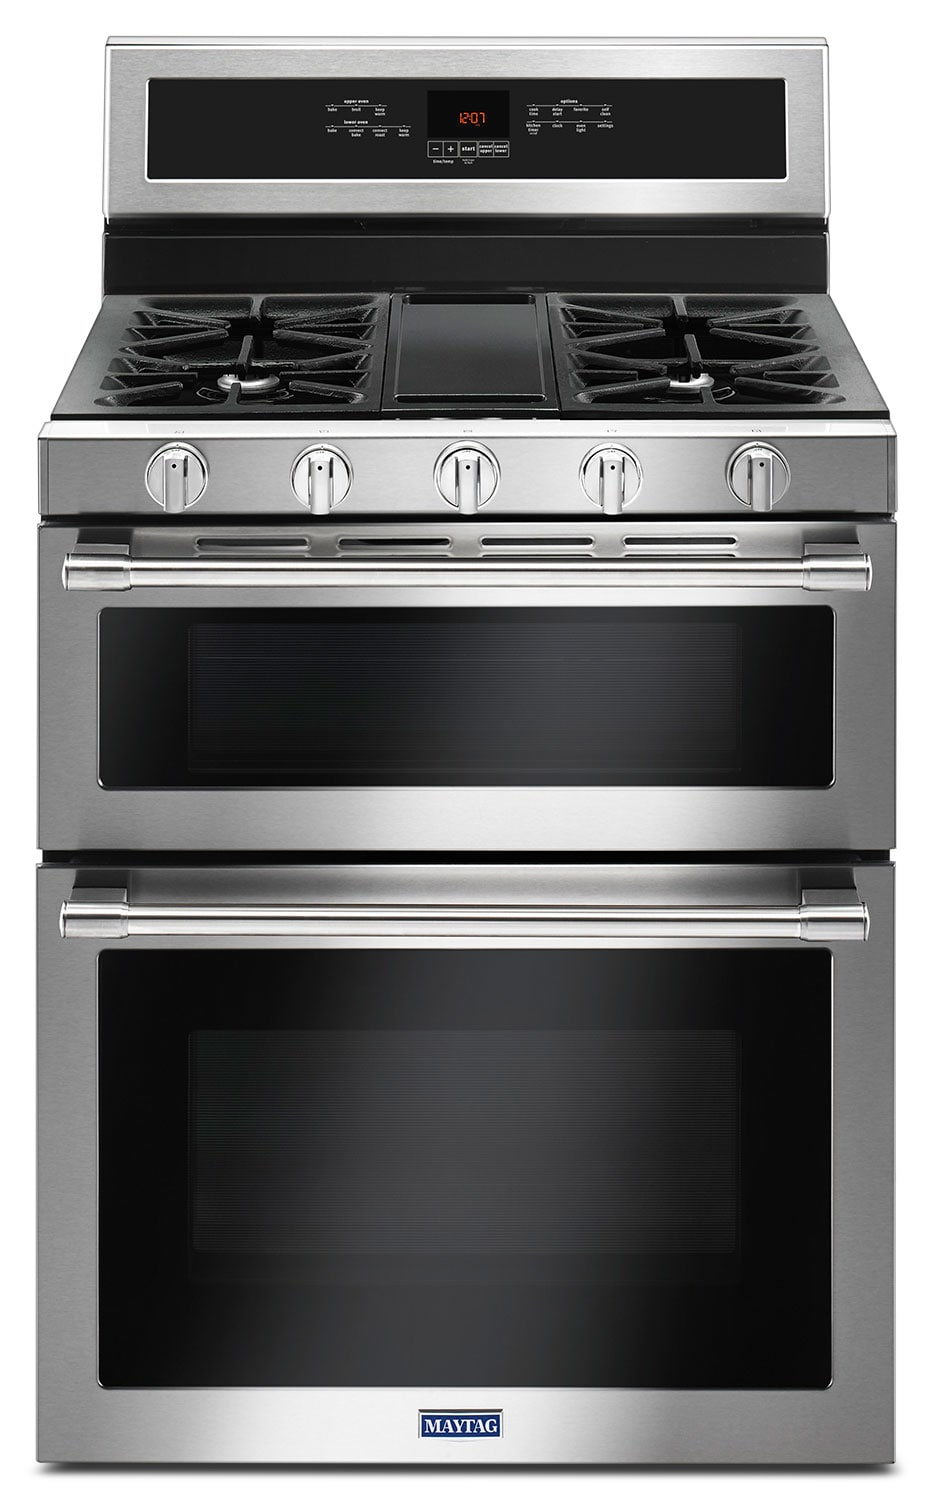 Maytag 6 0 cu ft double oven gas range with convection mgt8800fz the brick - Maytag electric double oven range ...